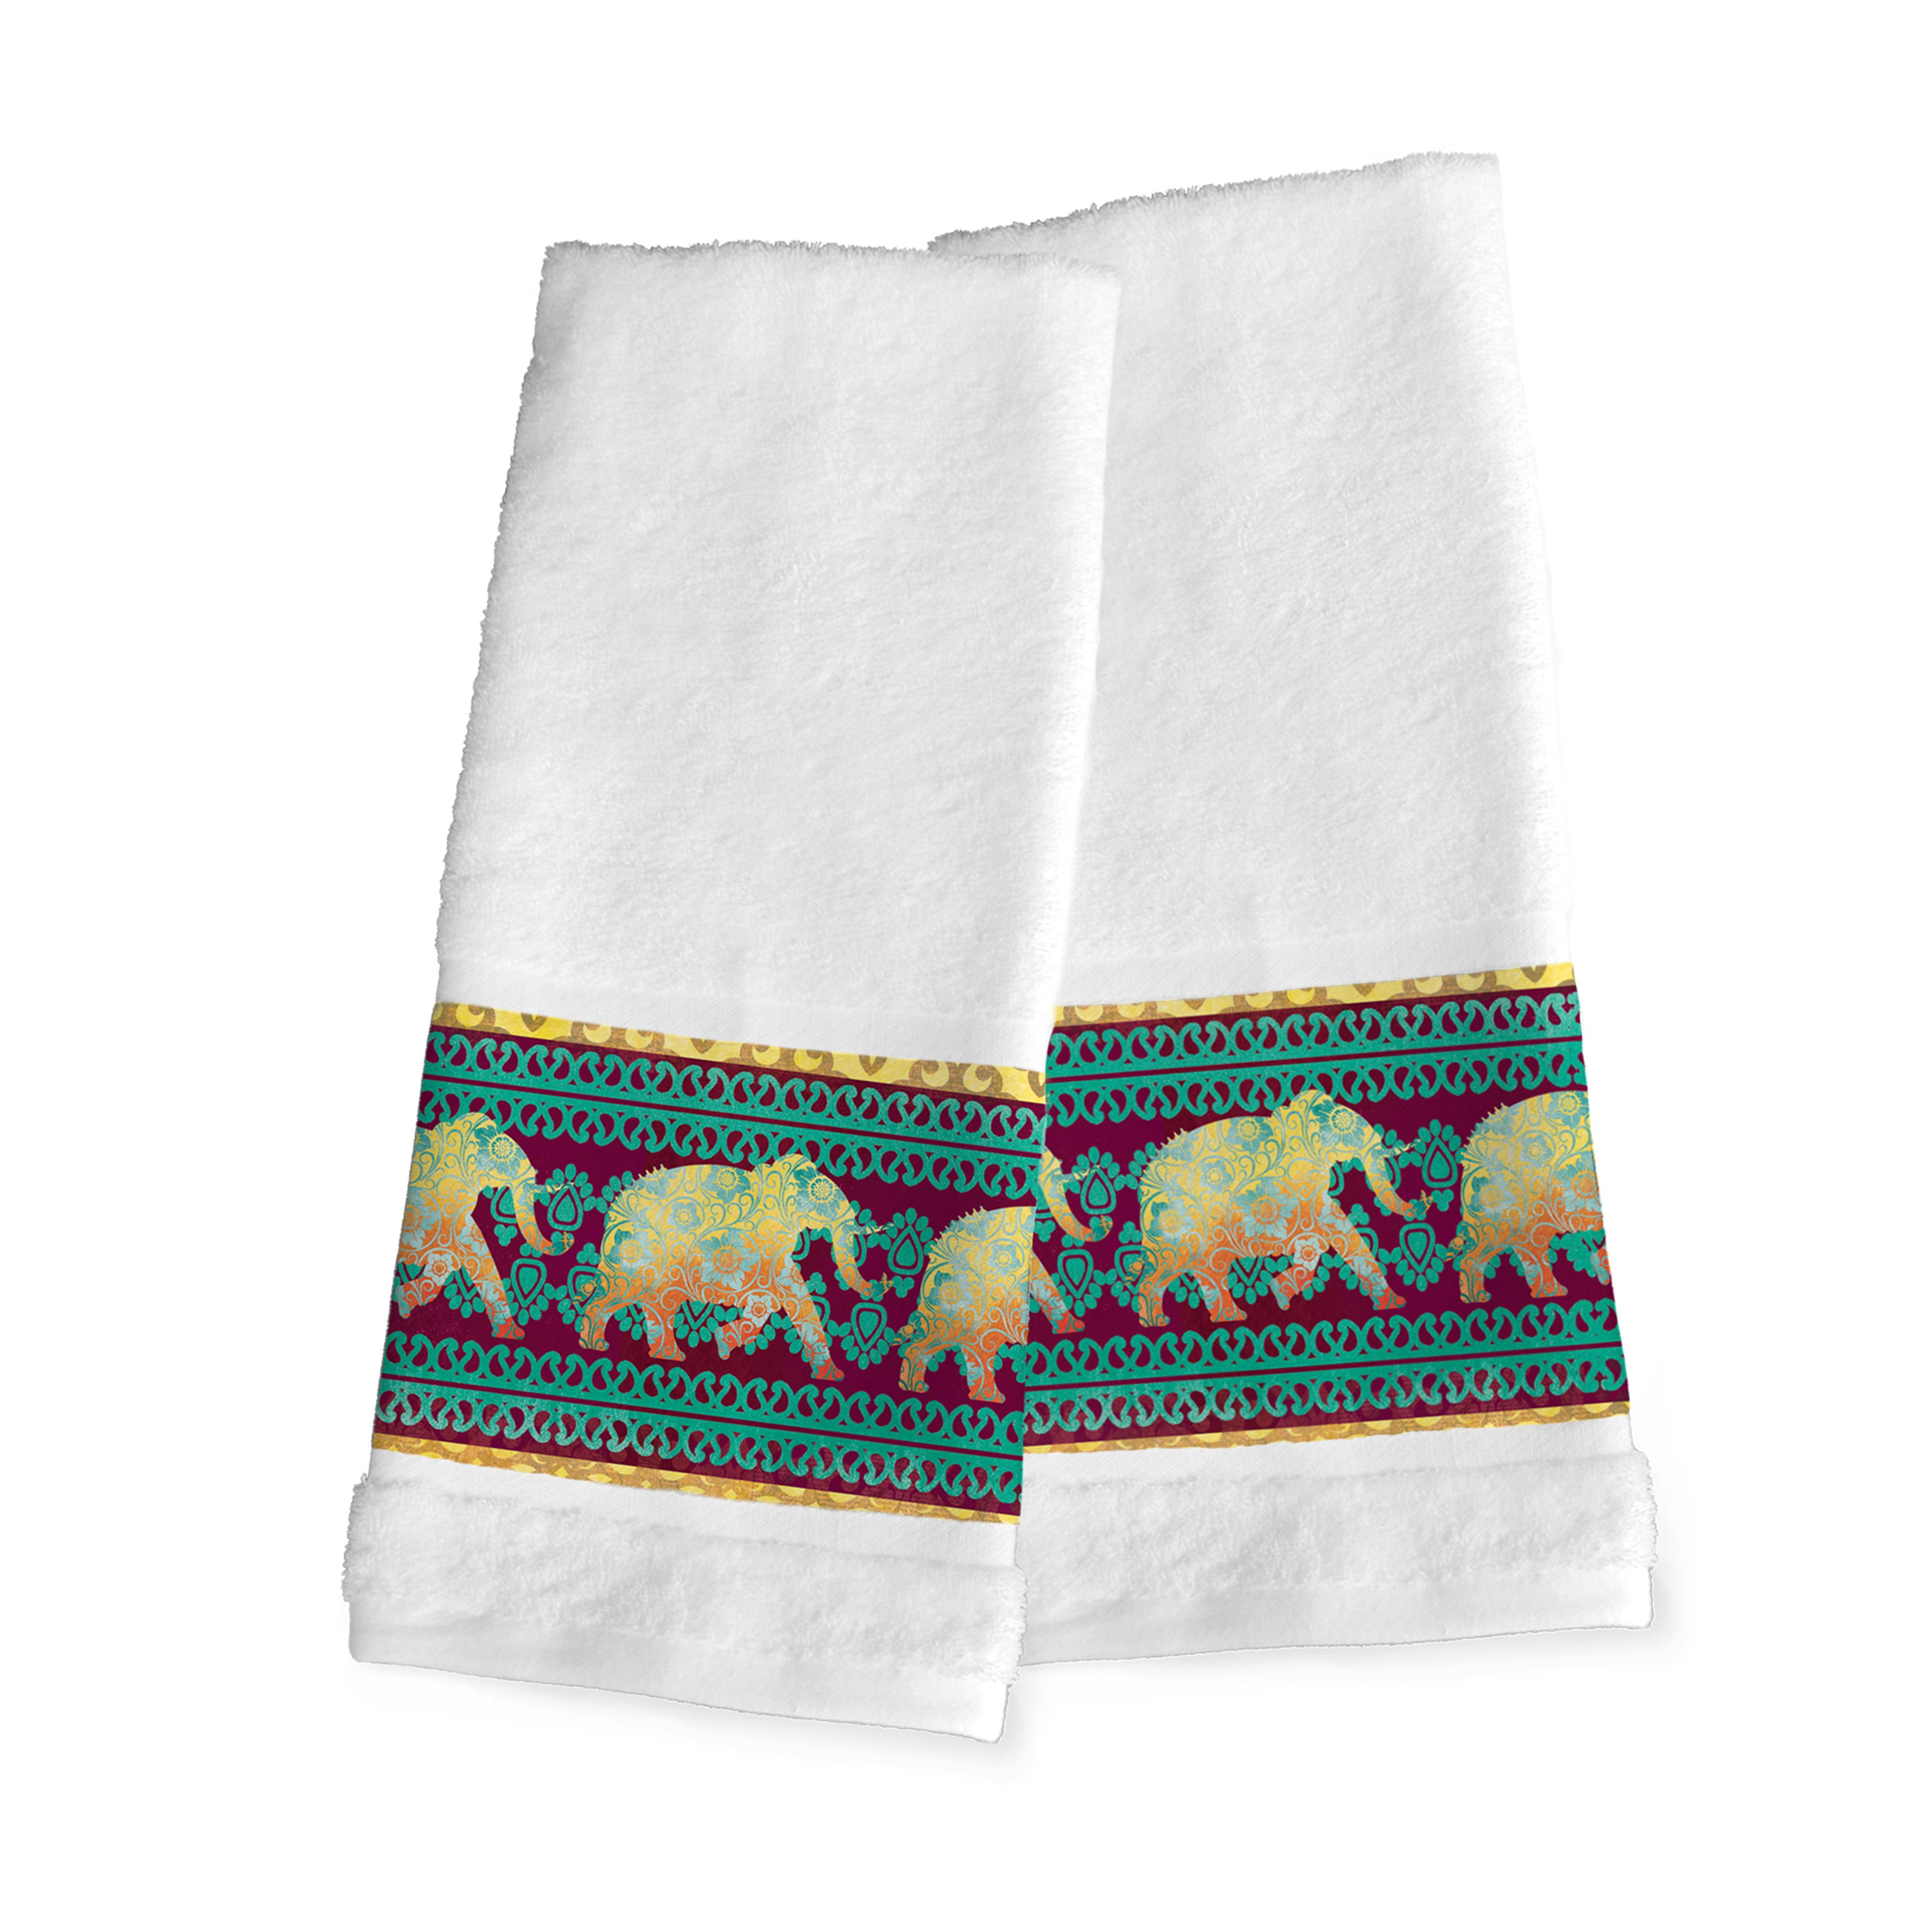 Laural Home Moroccan Elephants Hand Towel (Set of 2 Hand ...